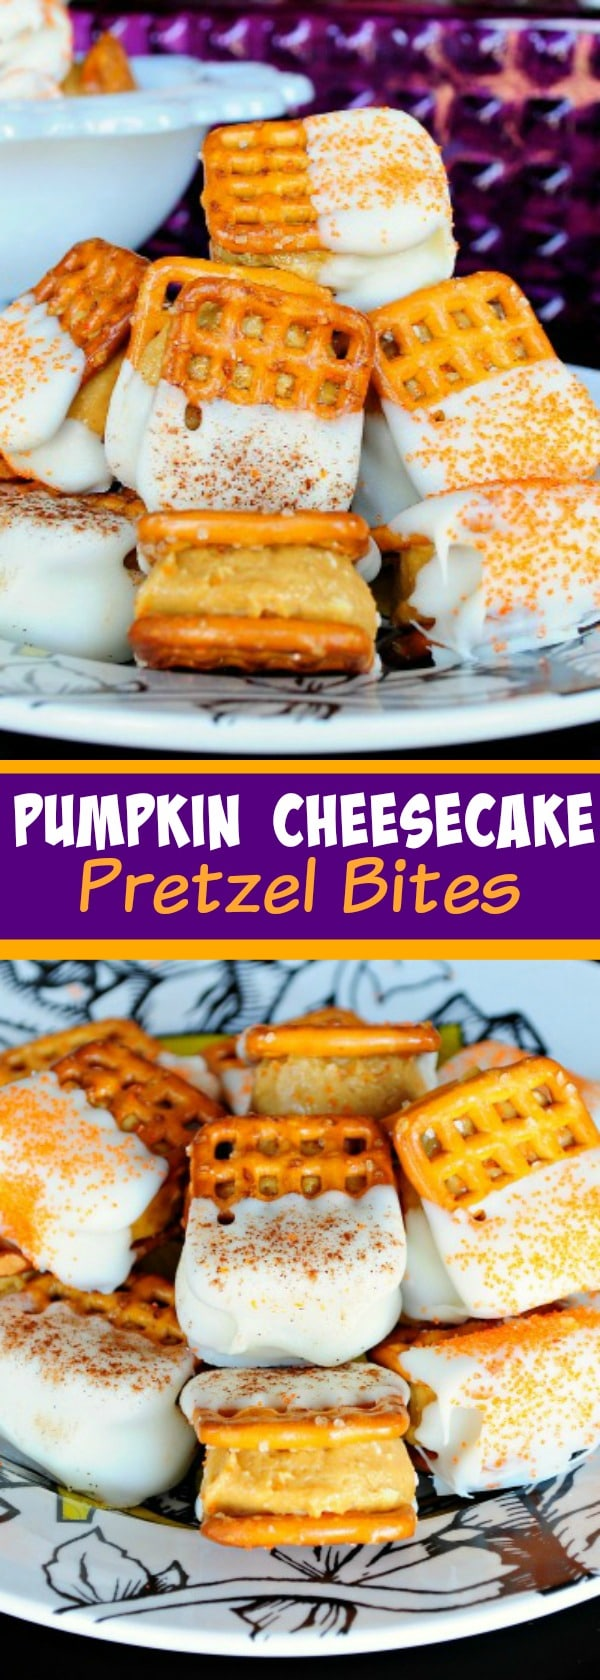 Pumpkin Cheesecake Pretzel Bites - A creamy pumpkin, biscoff, cheesecake mixture between 2 pretzels dipped in white chocolate! Great Fall snack!